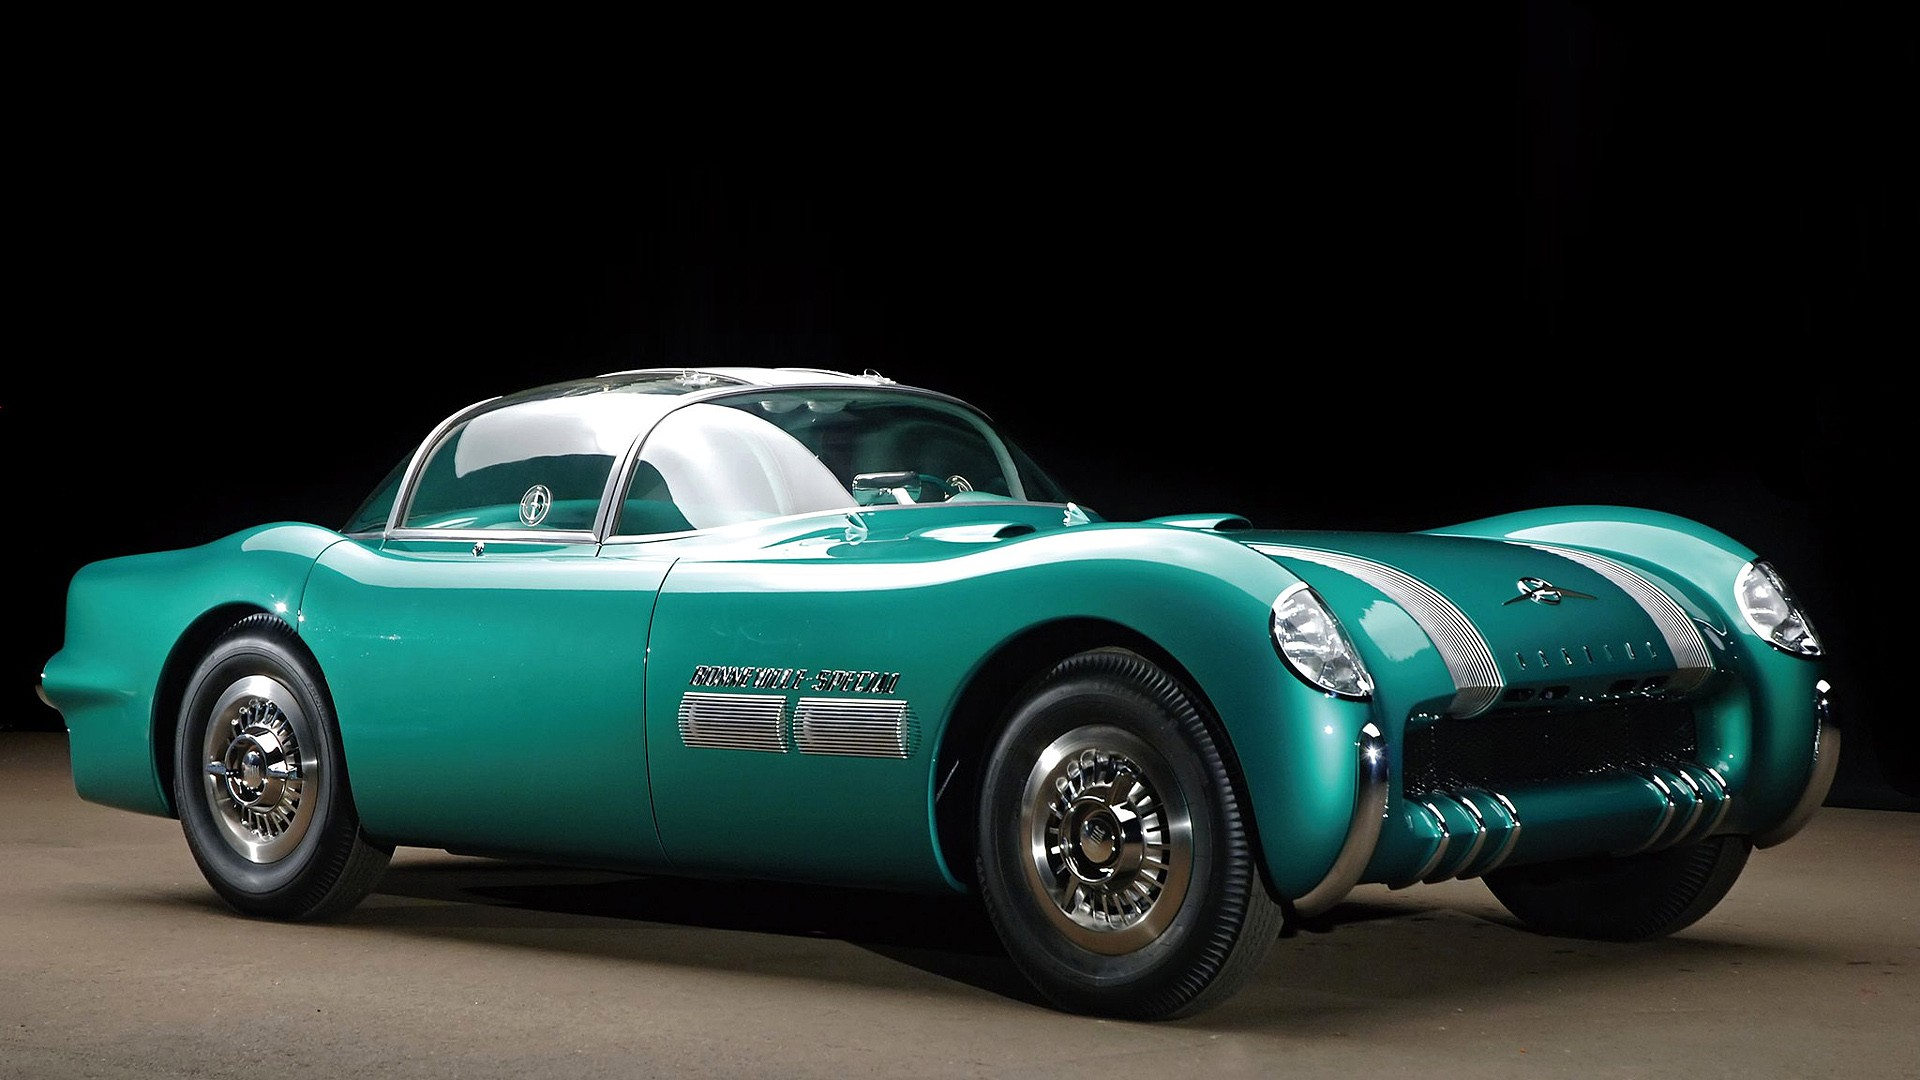 Old classic car - beautiful turquoise color Wallpaper Download 1920x1080